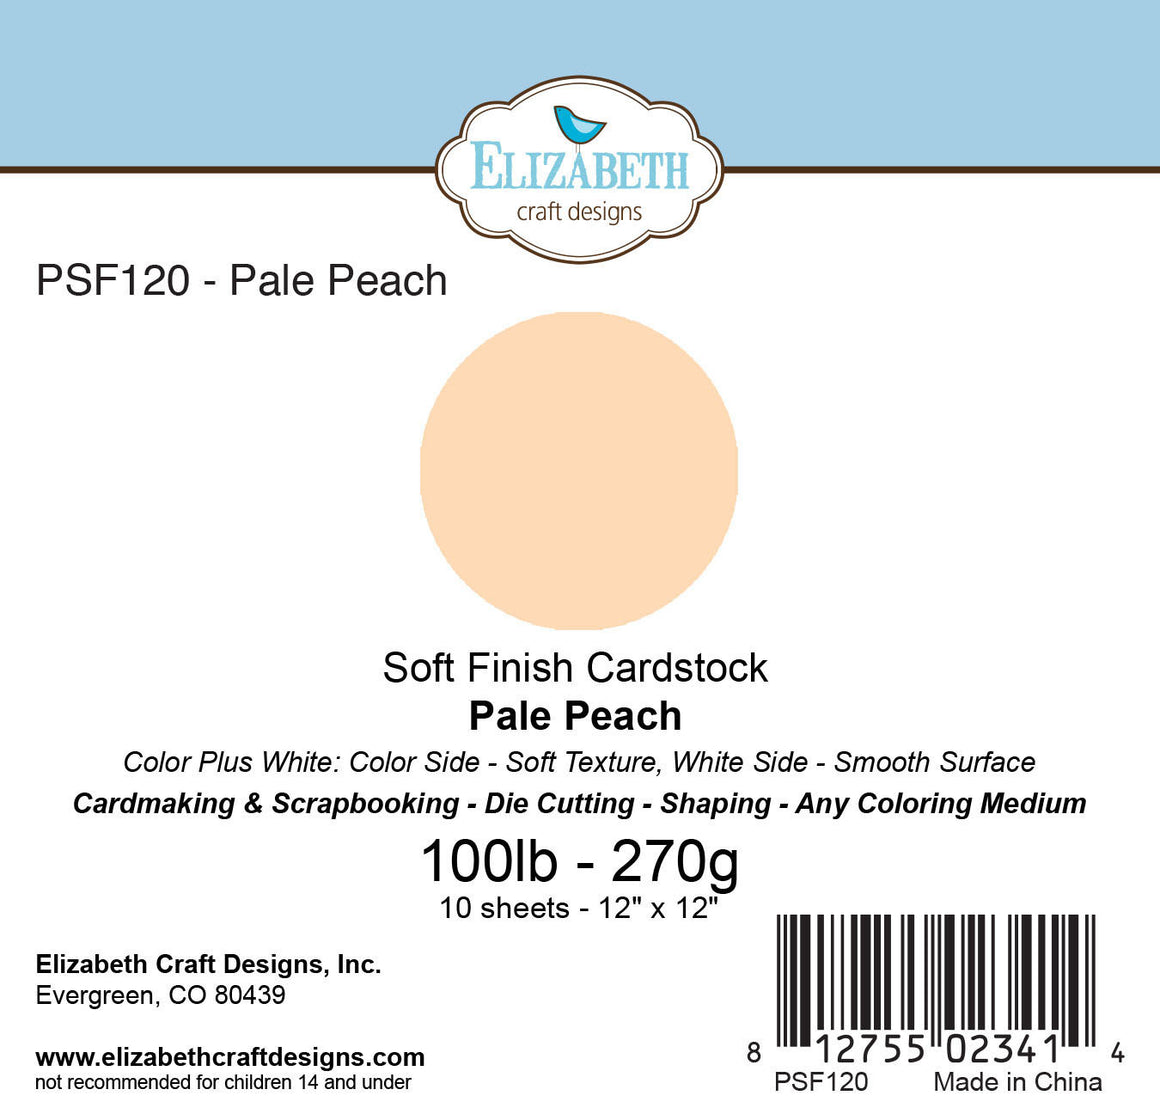 Soft Finish Cardstock, Pale Peach